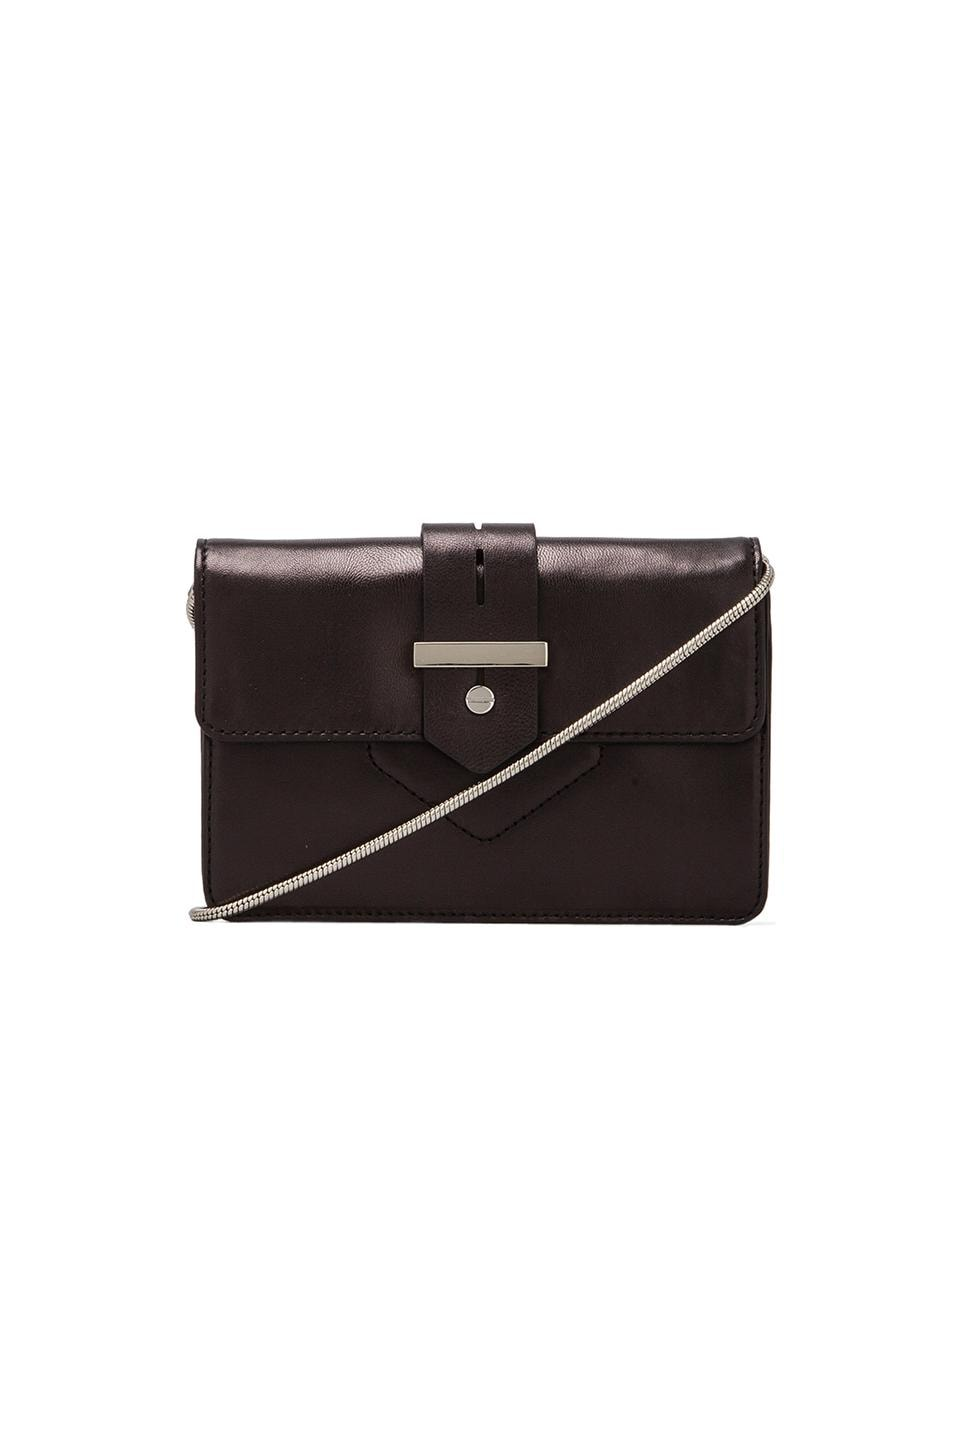 MILLY Bradley Collection Mini Bag in Black